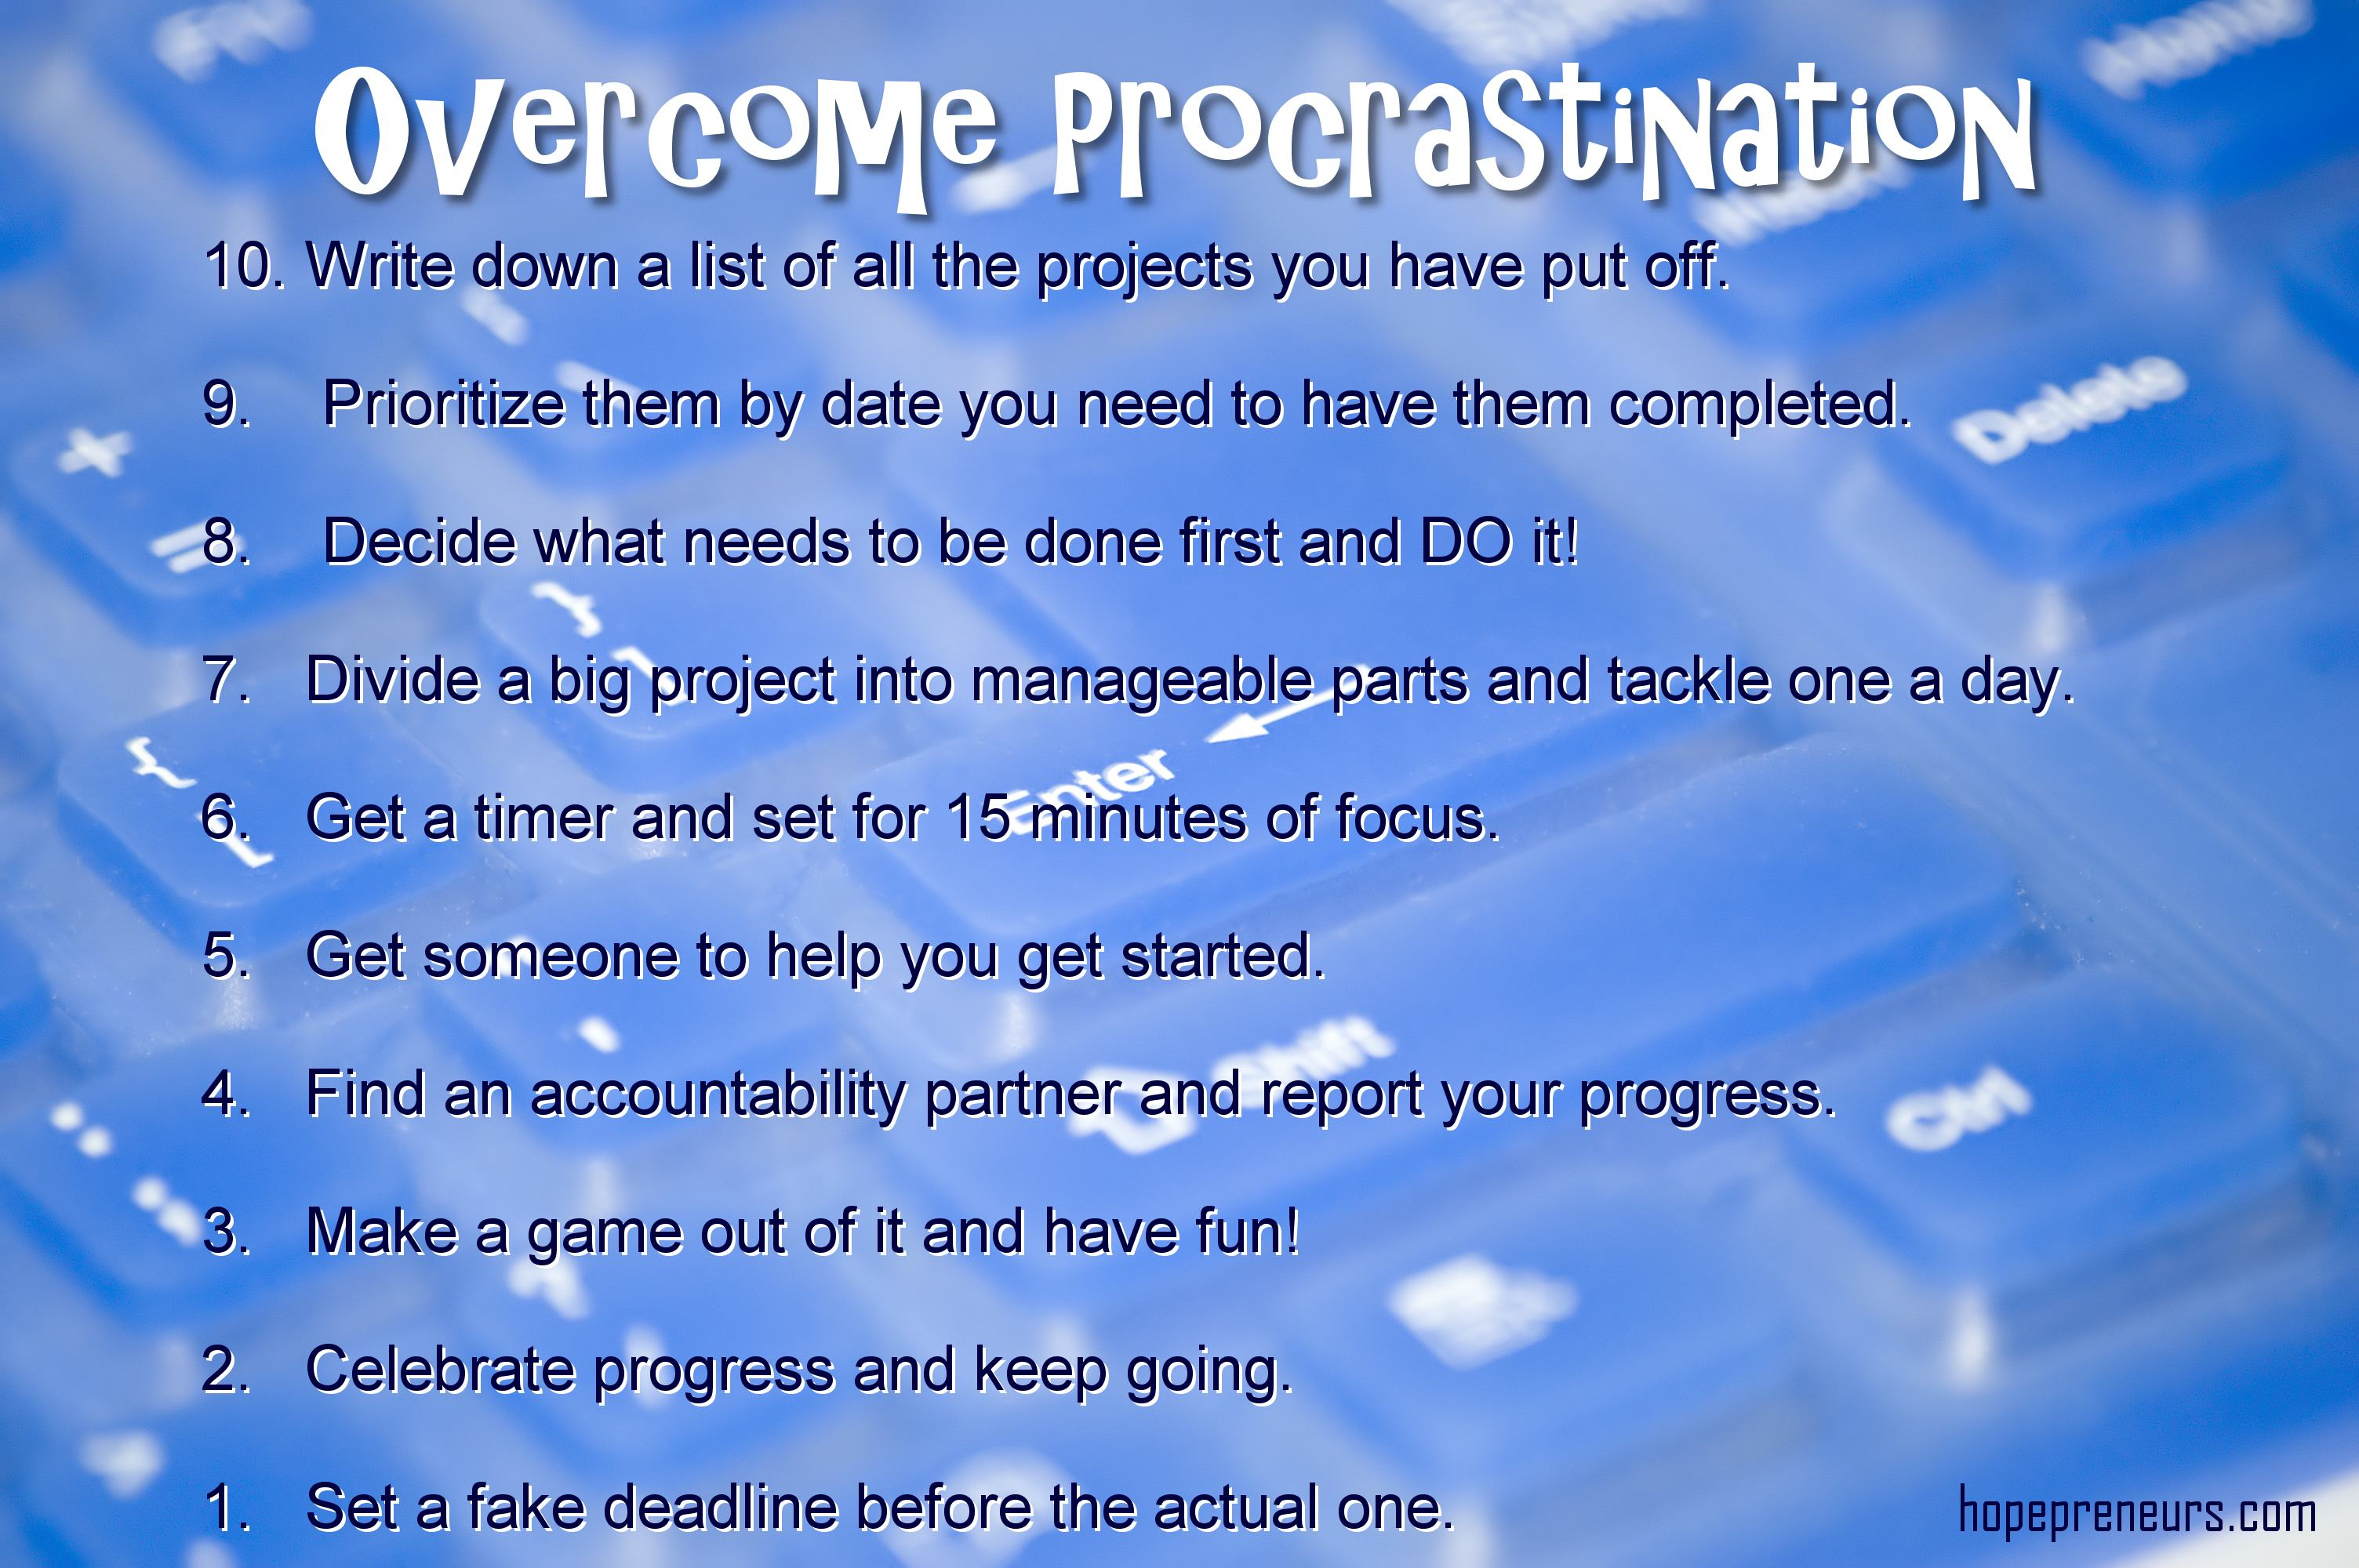 Motivational Messages Insightful And Motivational Messages About Procrastination